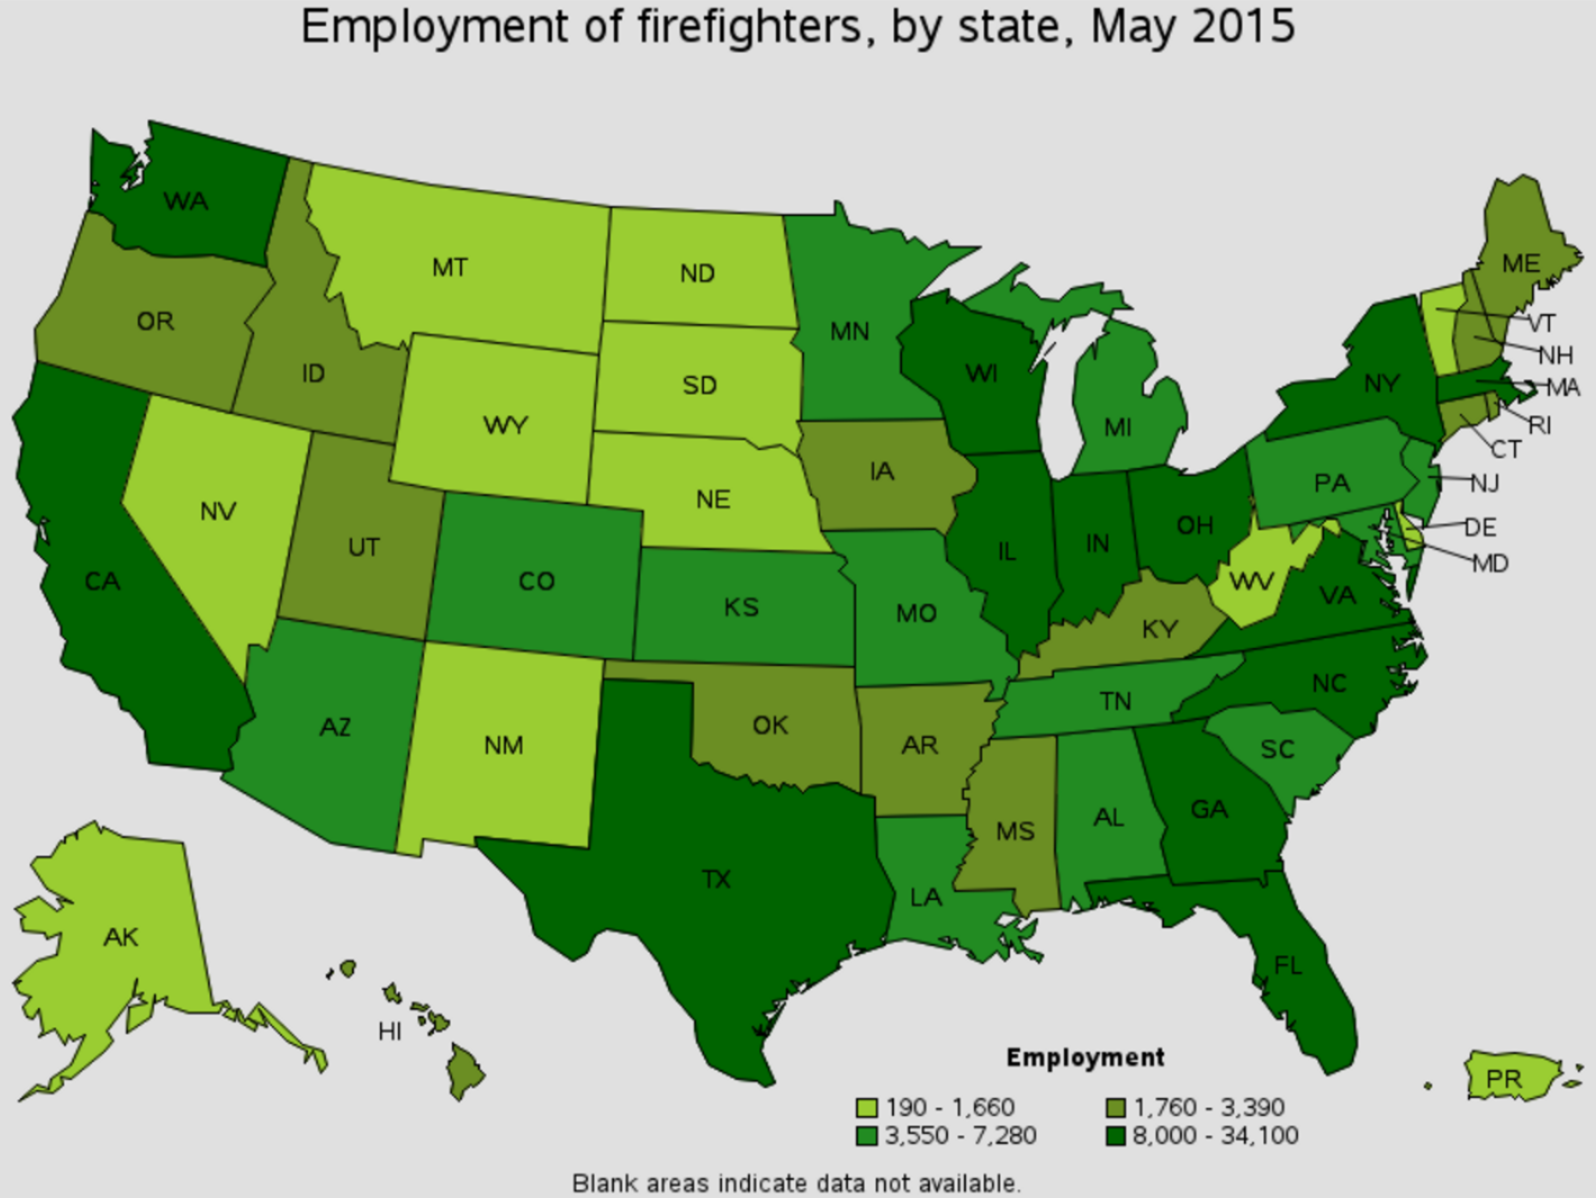 firefighter job outlook by state Pomona California